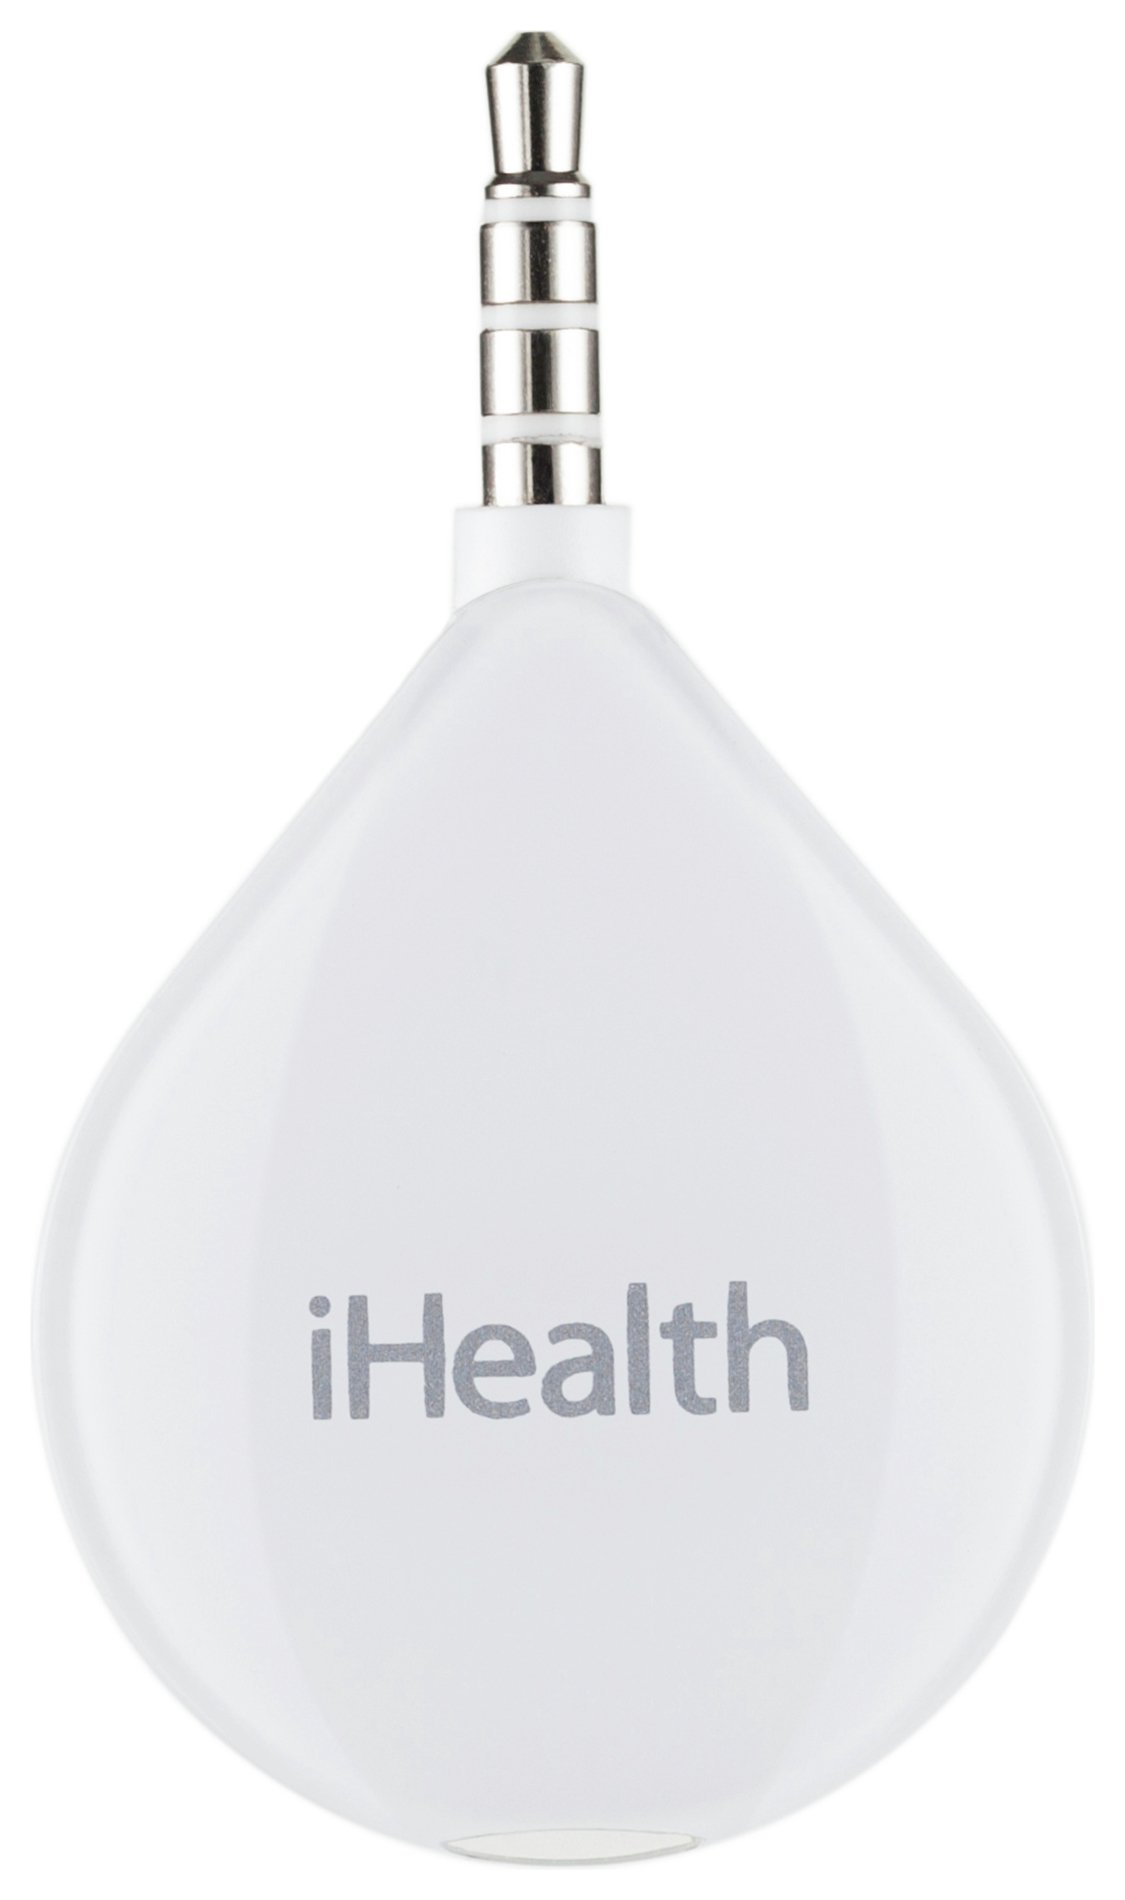 Image of iHealth Align Glucose Monitoring System